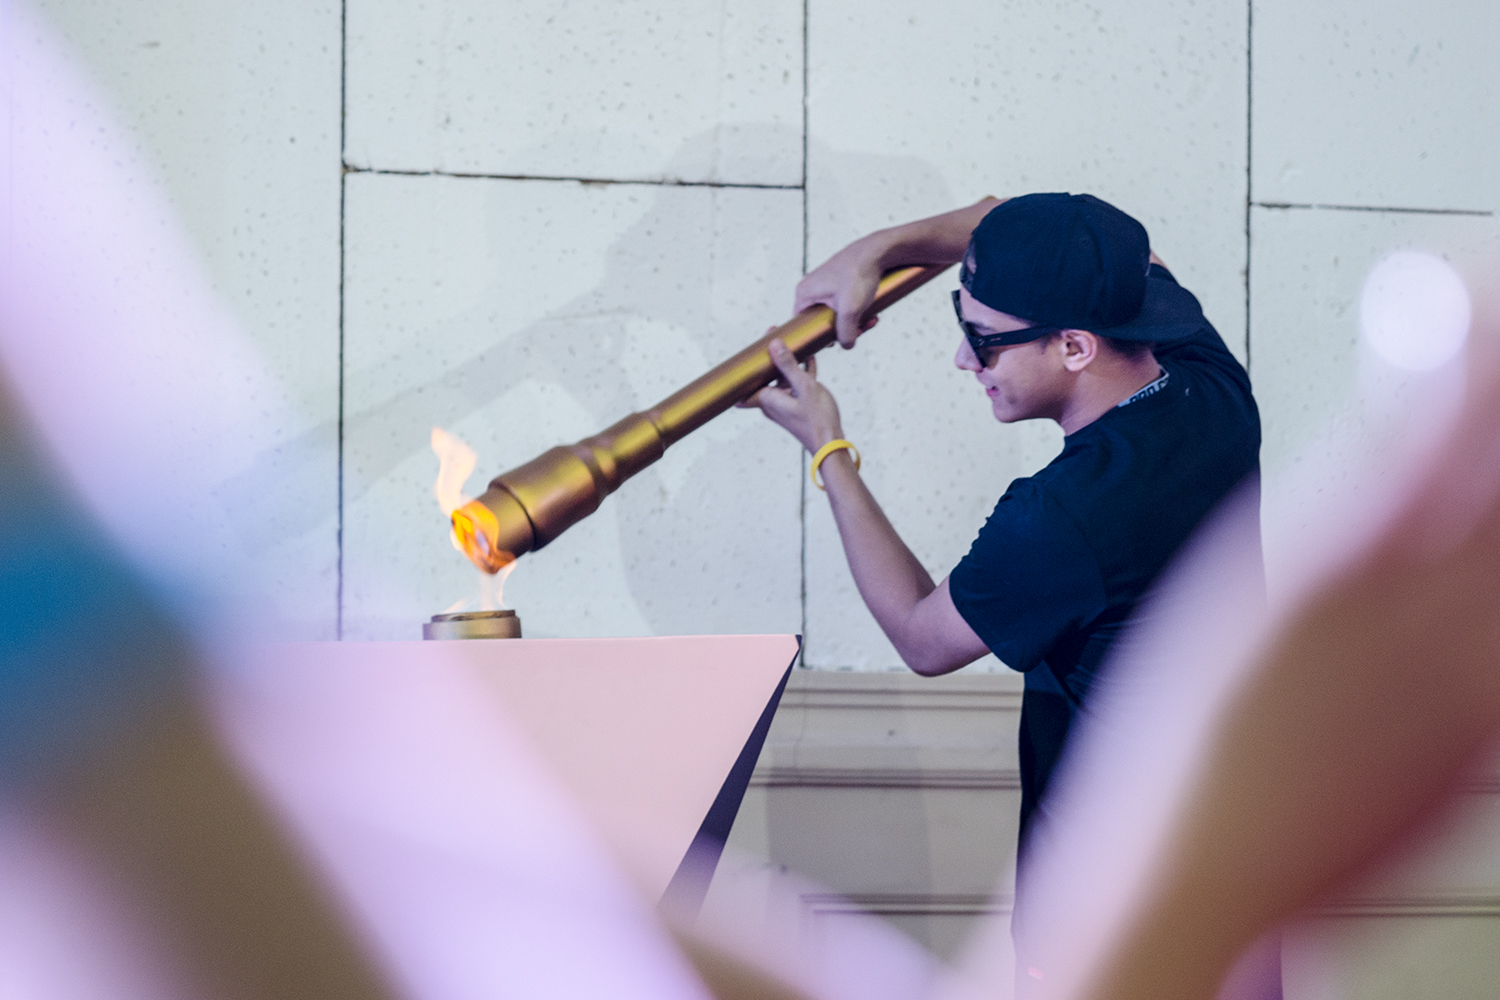 Daniel Padilla lights the torch to start the annual Star Magic Olympics. Photo by Rob Reyes/Rappler